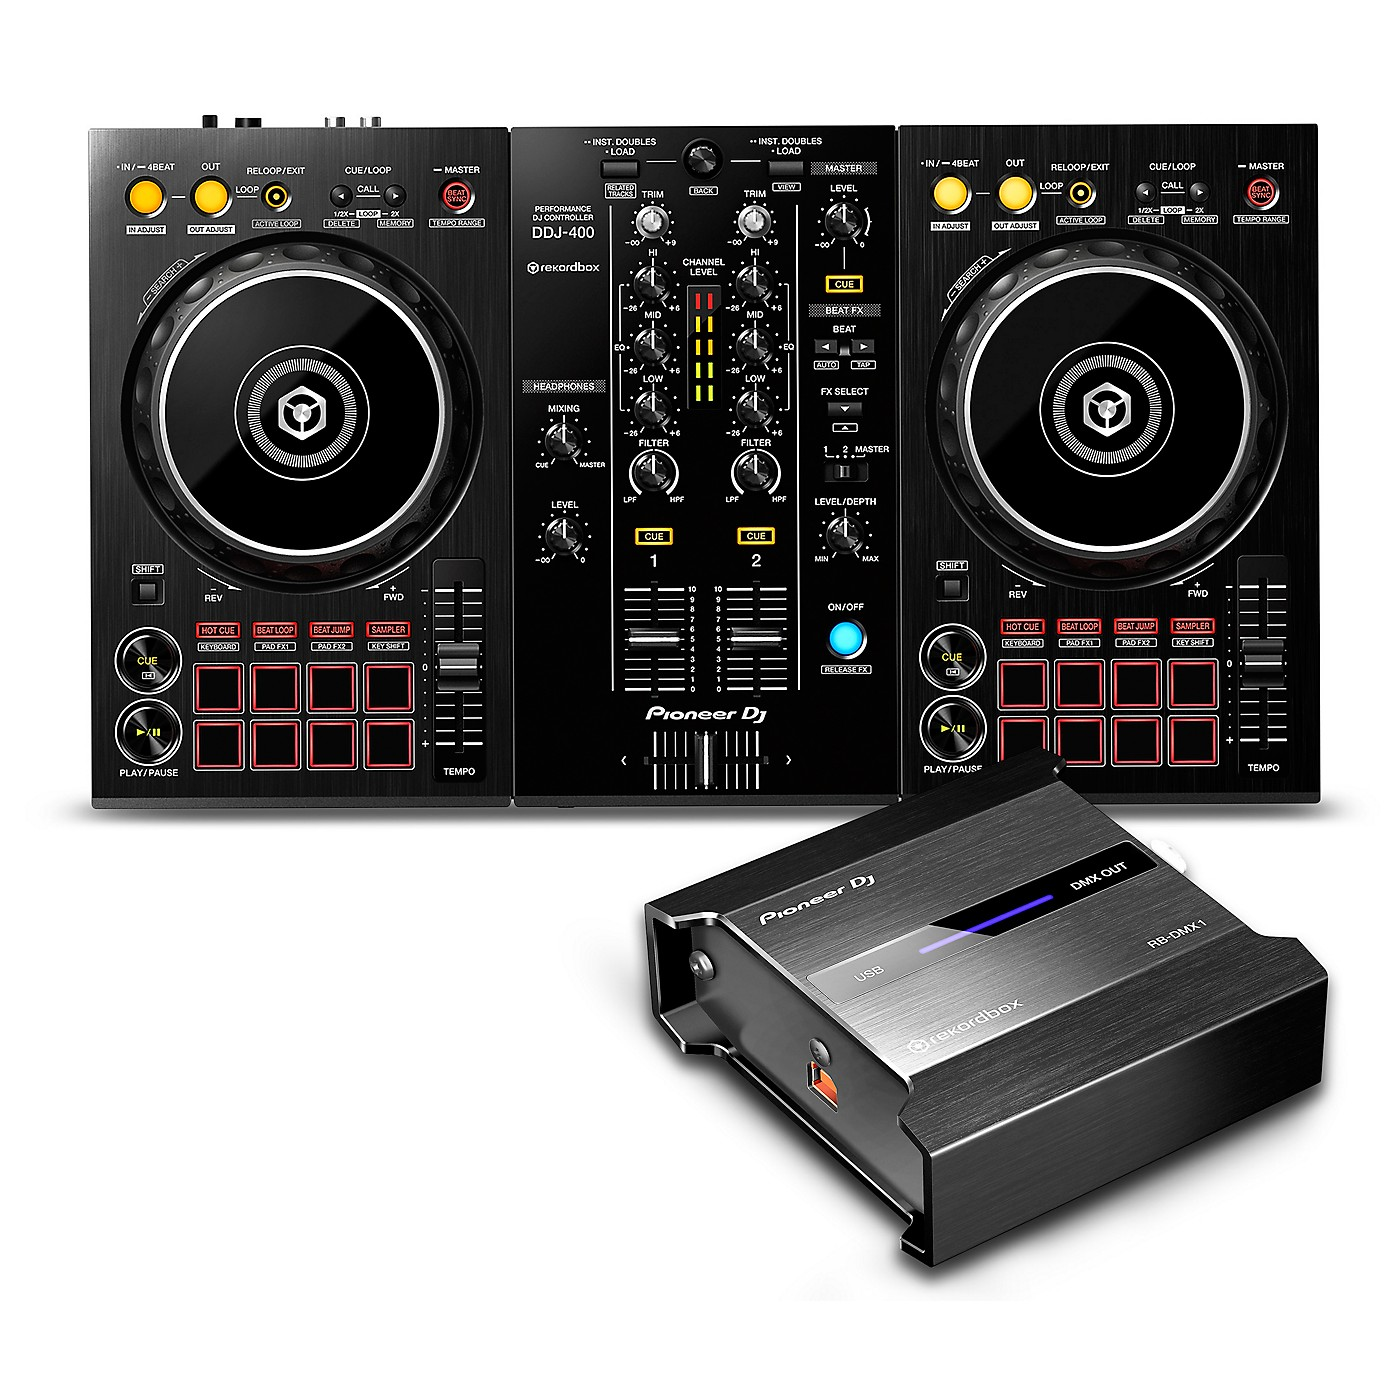 Pioneer DDJ-400 Performance Controller with RB-DMX1 Lighting Controller for Rekordbox thumbnail